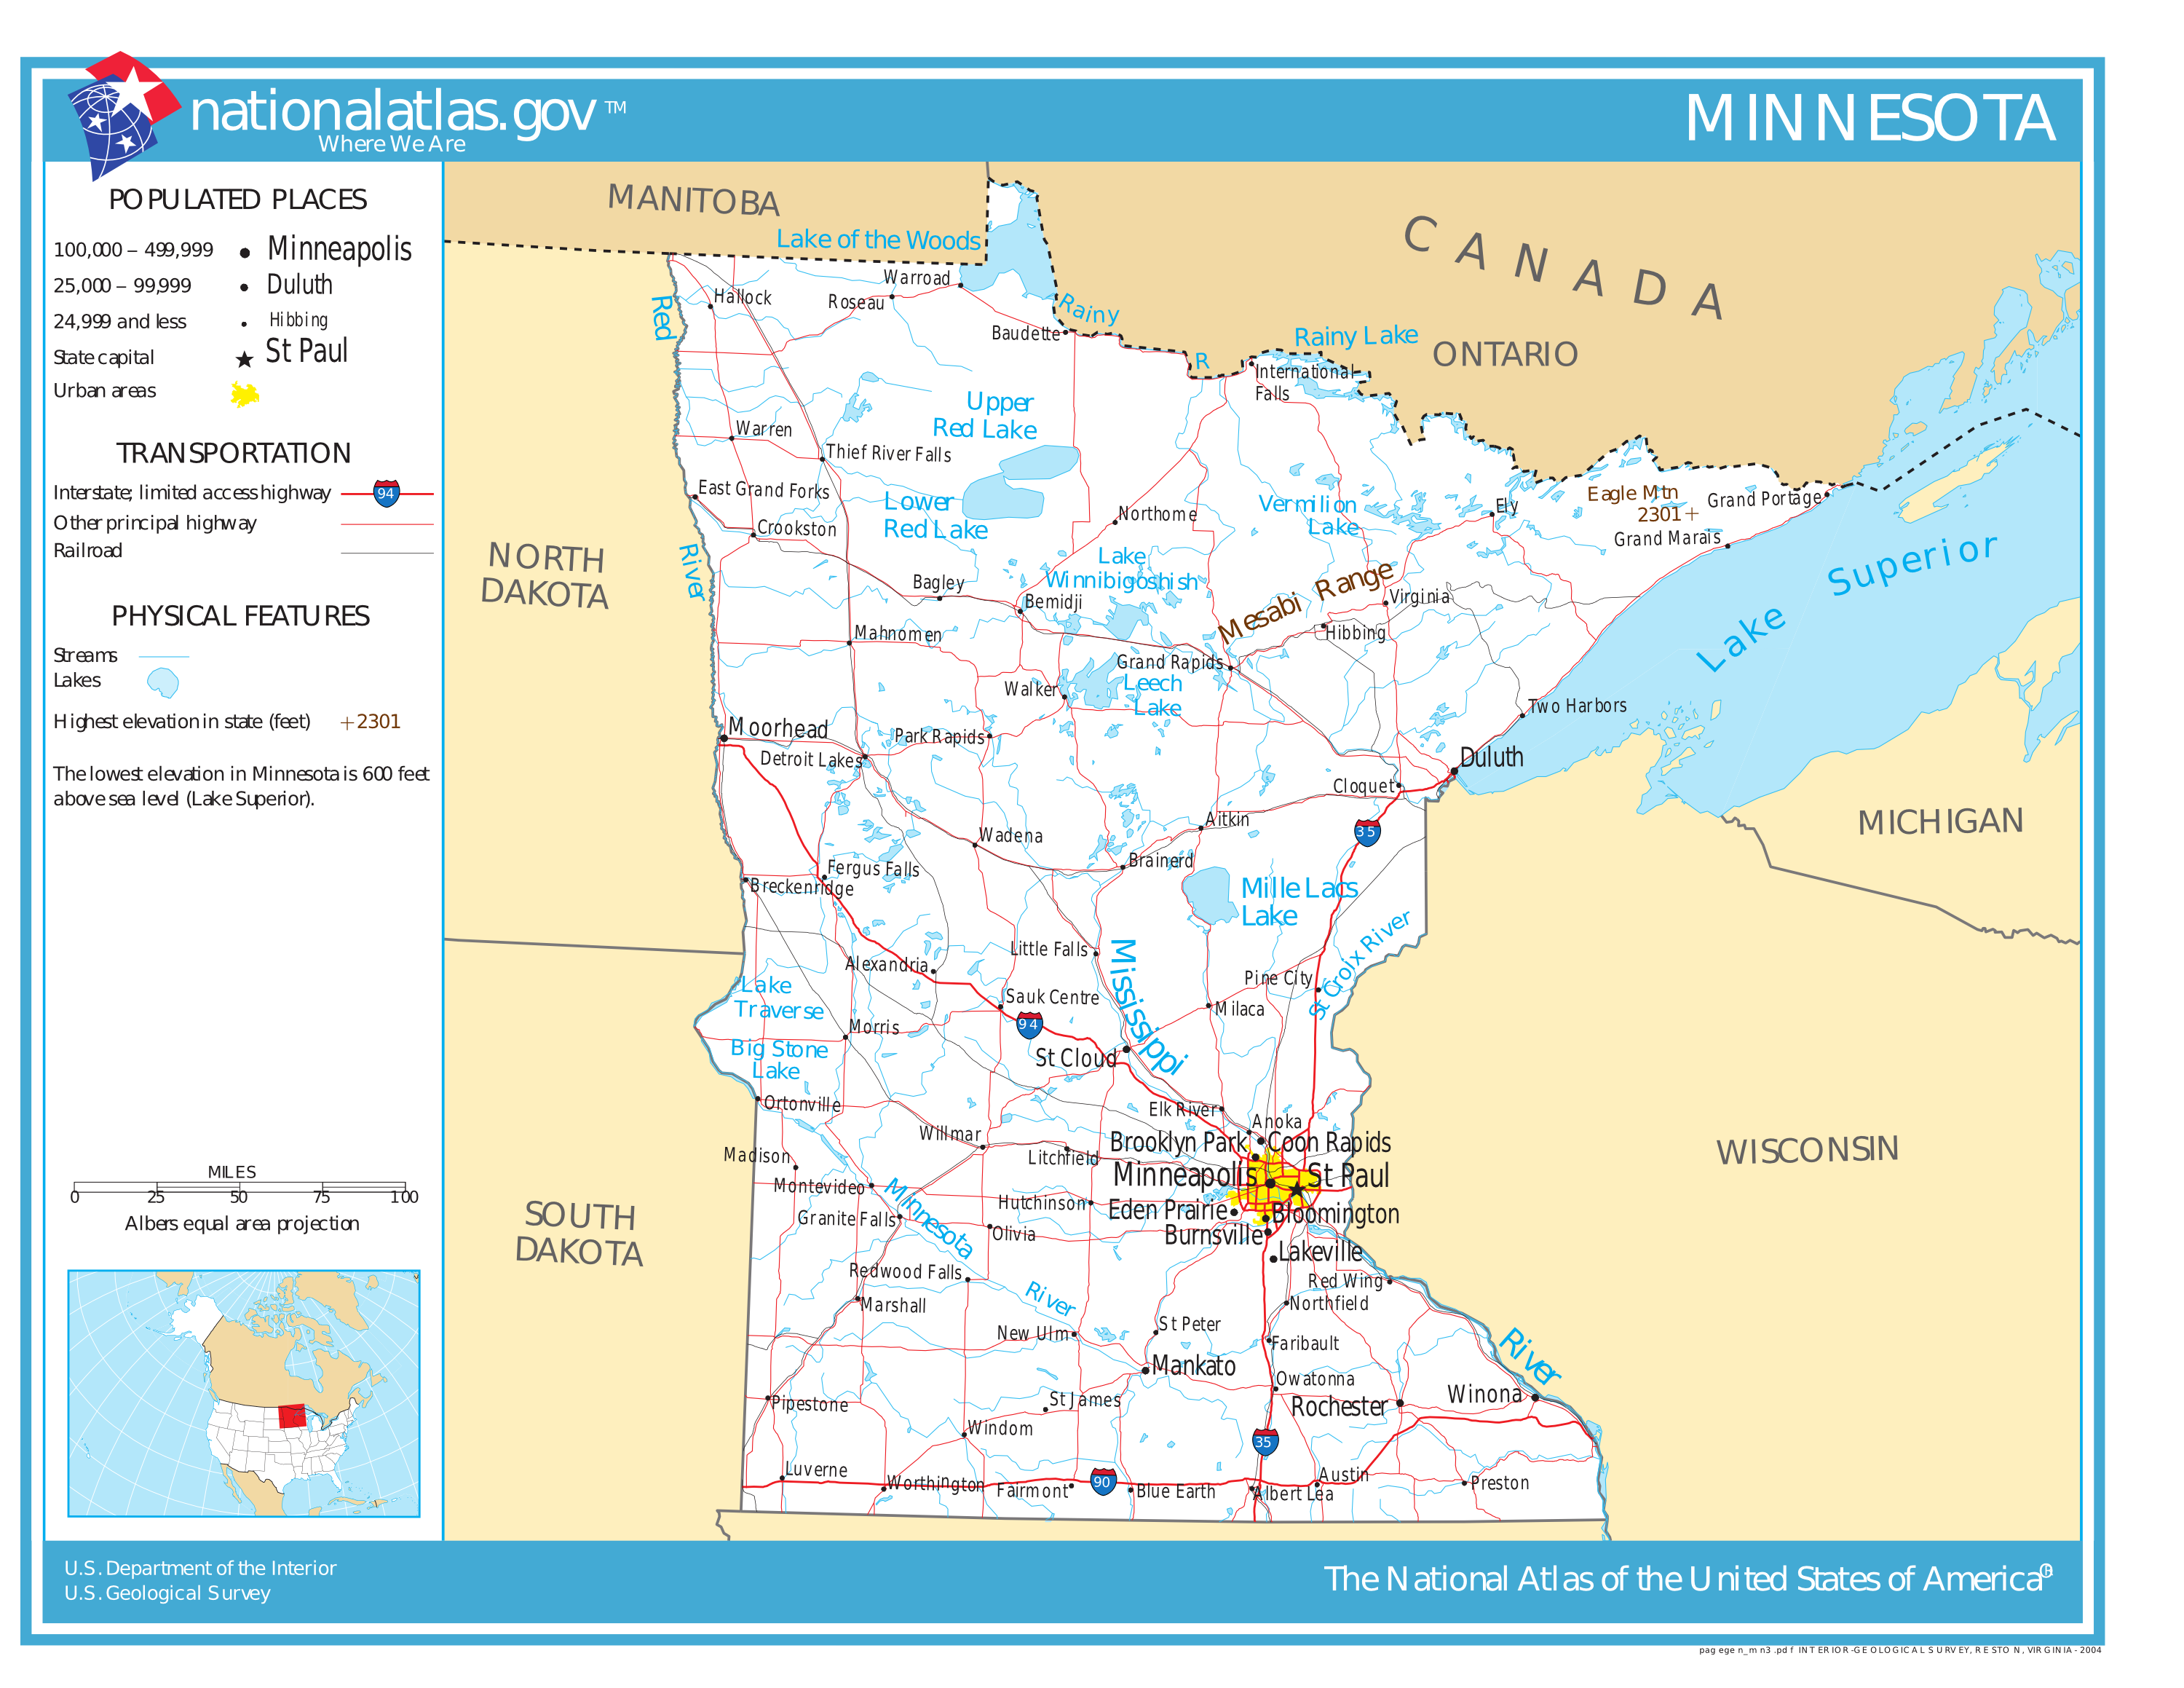 Map of Minnesota (Street Map) : Worldofmaps.net - online Maps and ...